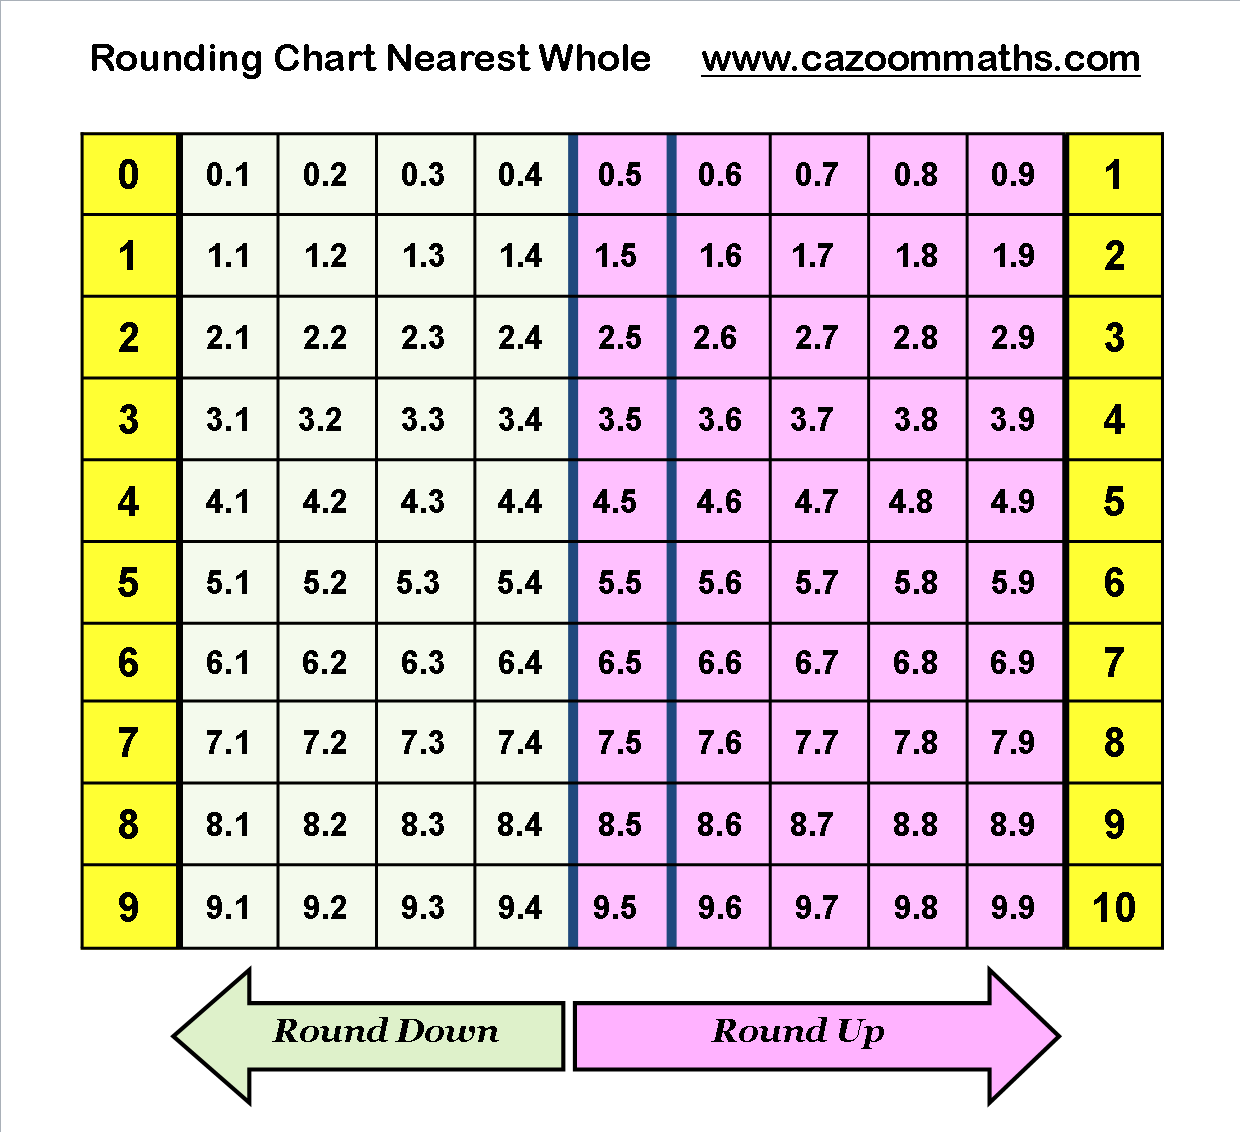 Rounding Chart To Nearest Whole